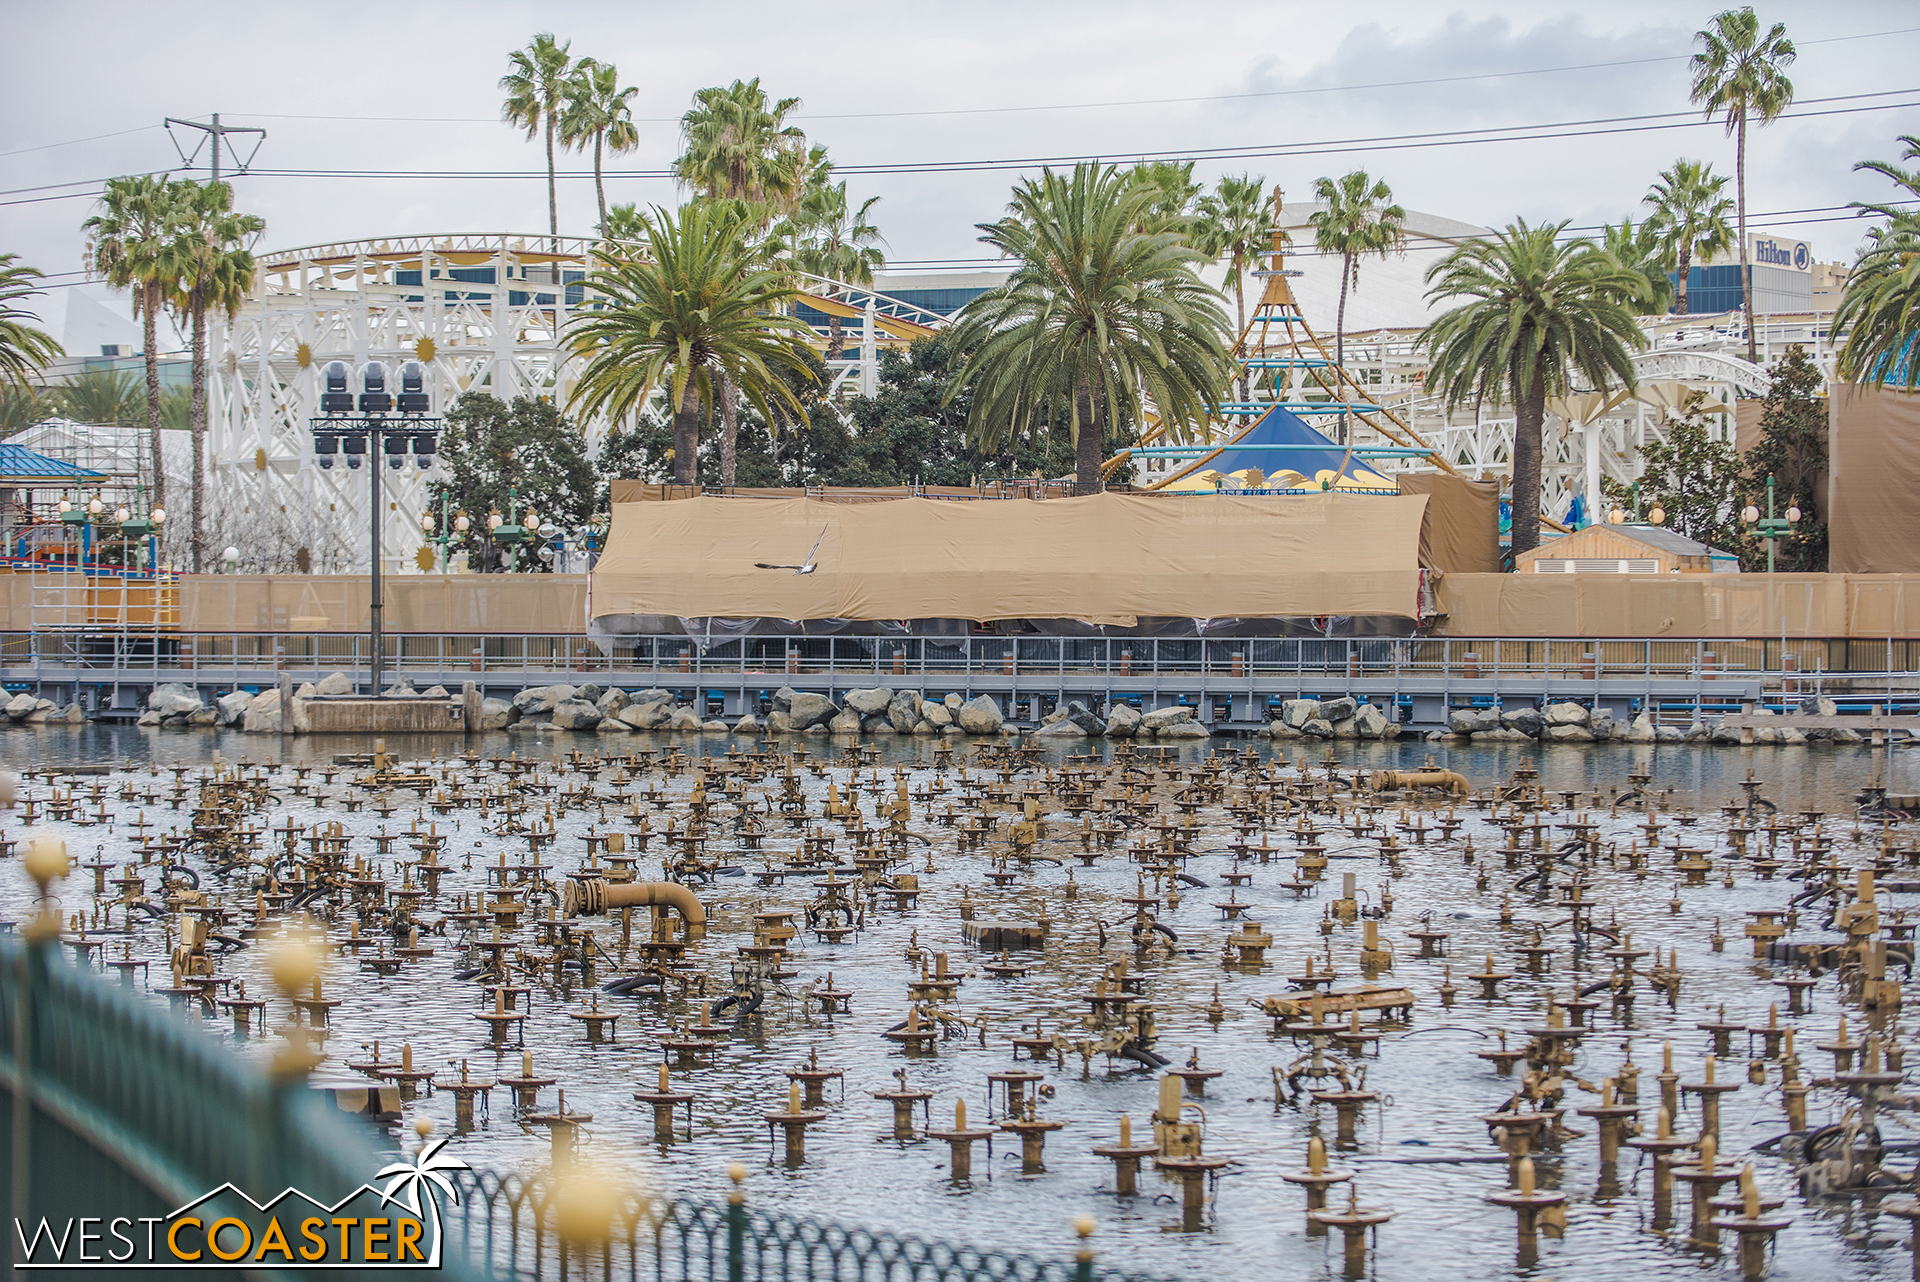 Here's a pan of the Pixar Pier waterfront.